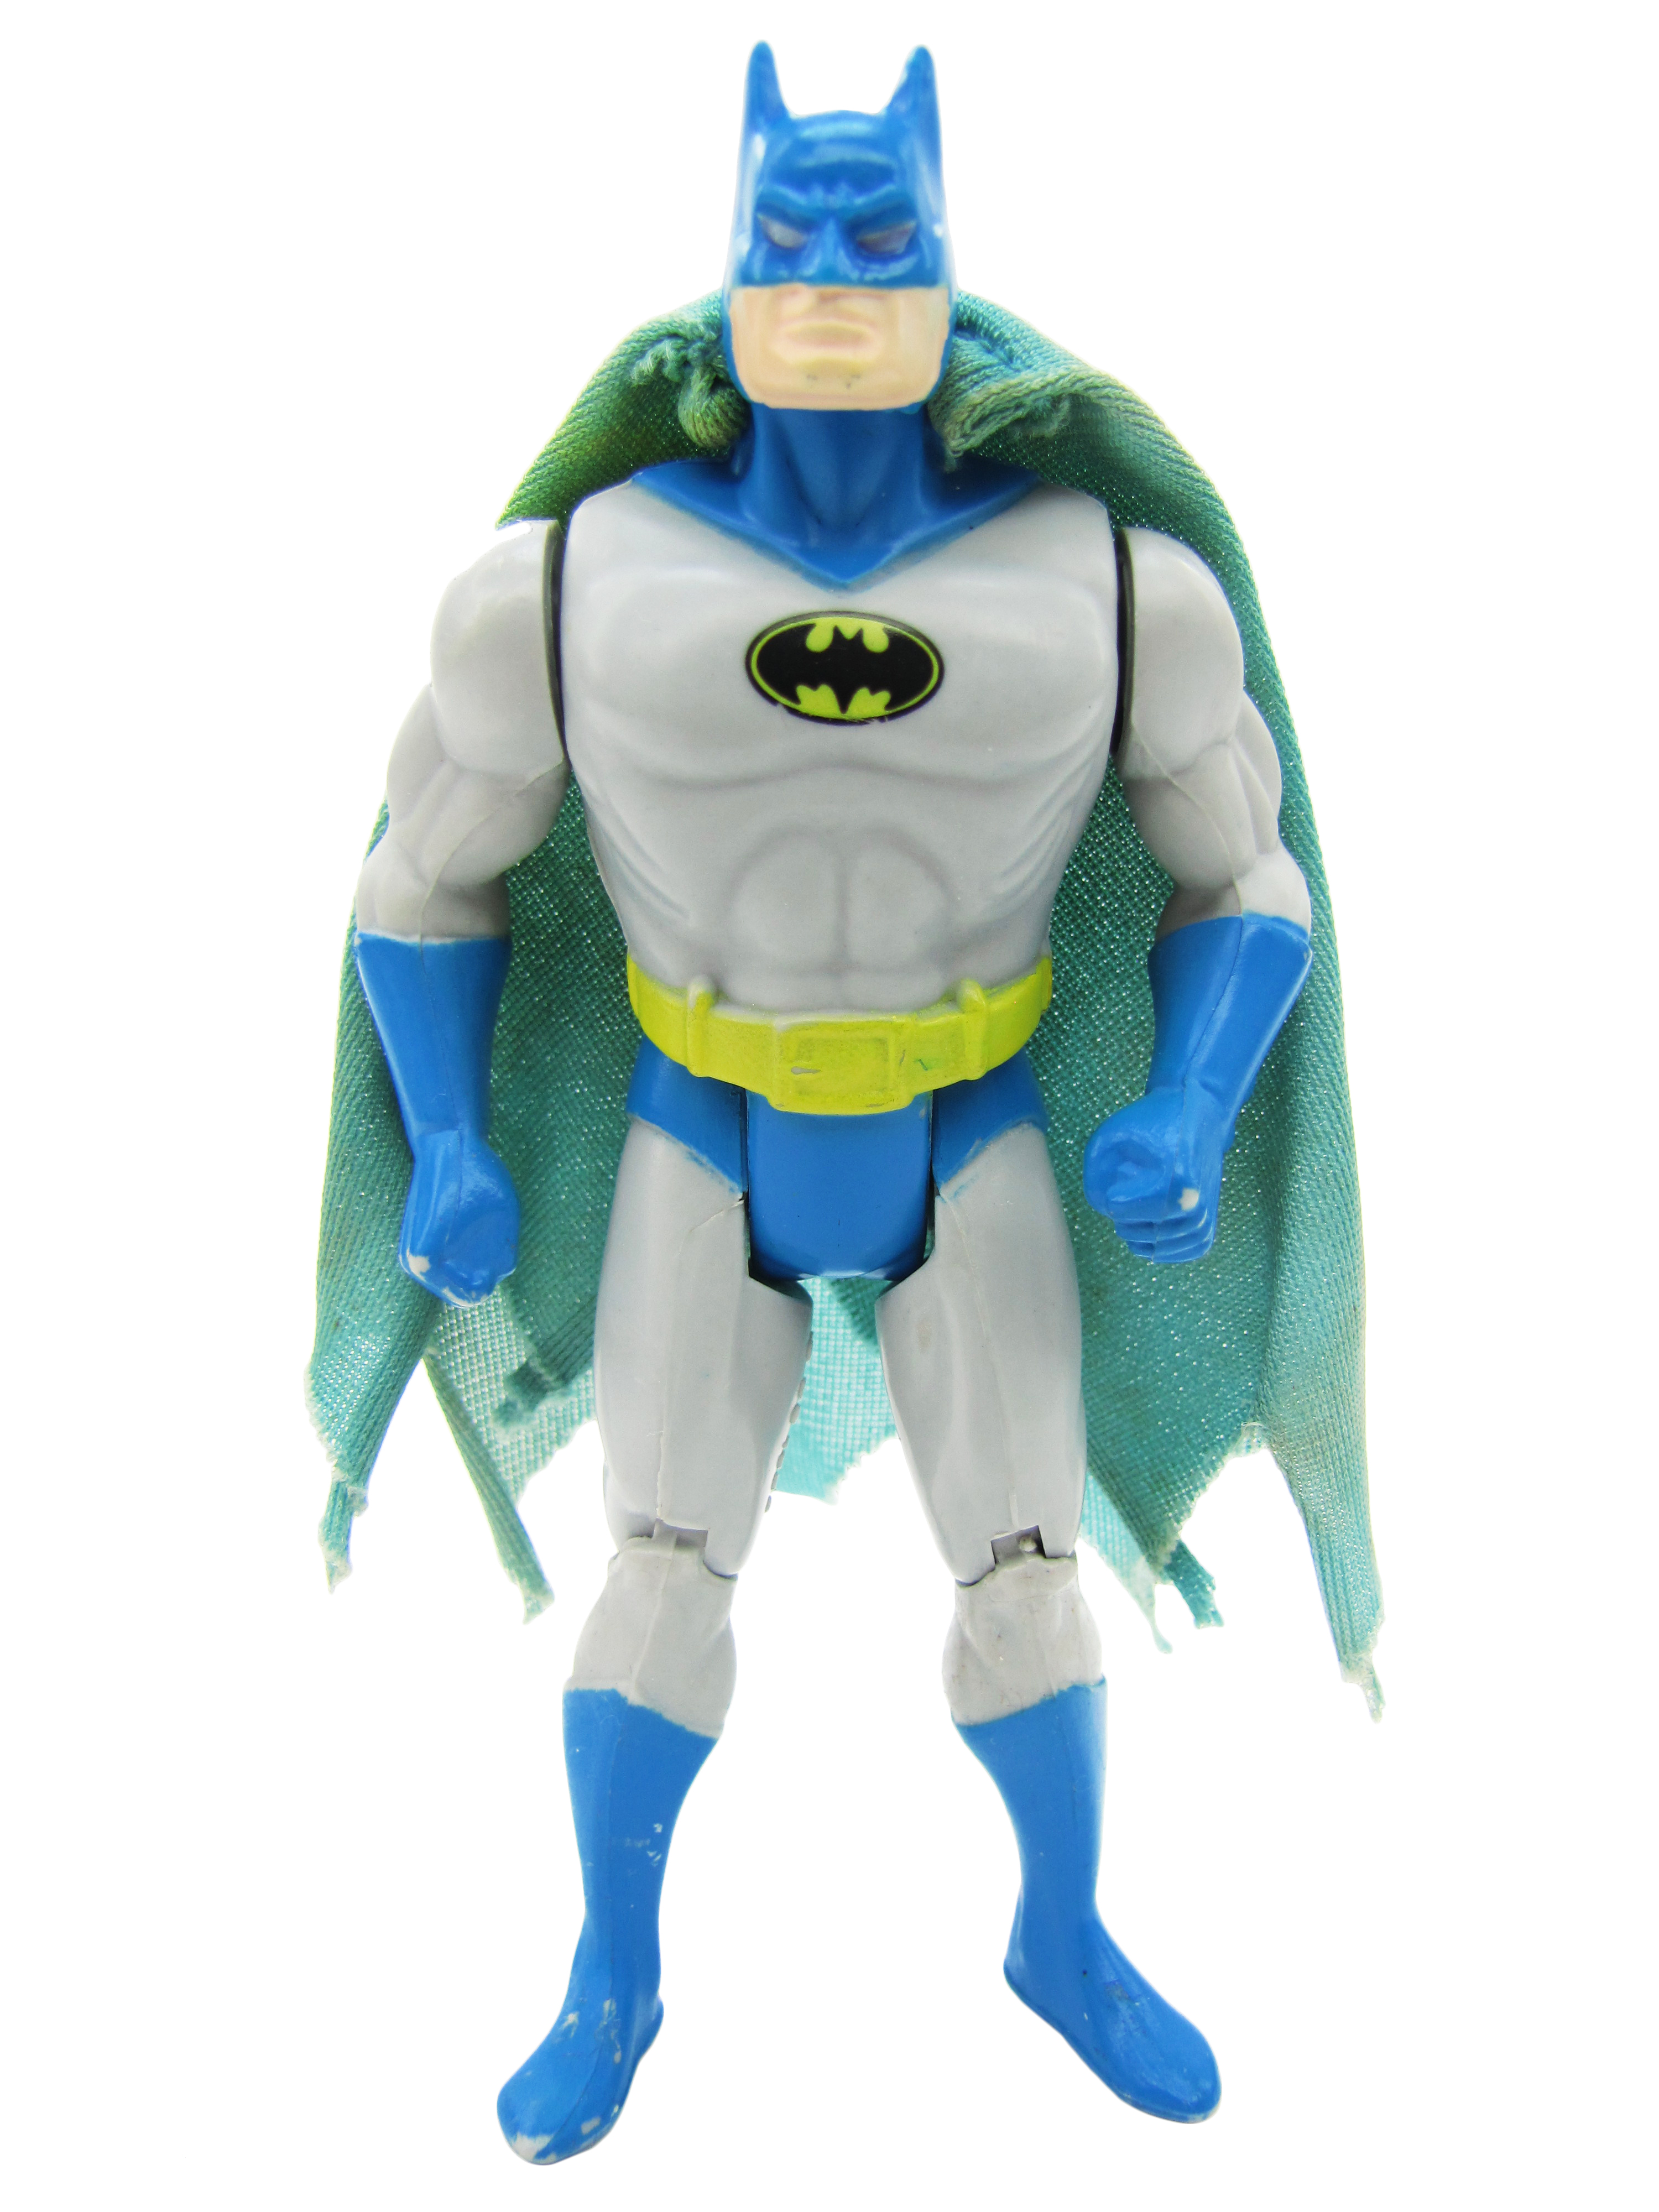 1984 DC Super Powers Collection BATMAN Complete Great Condition